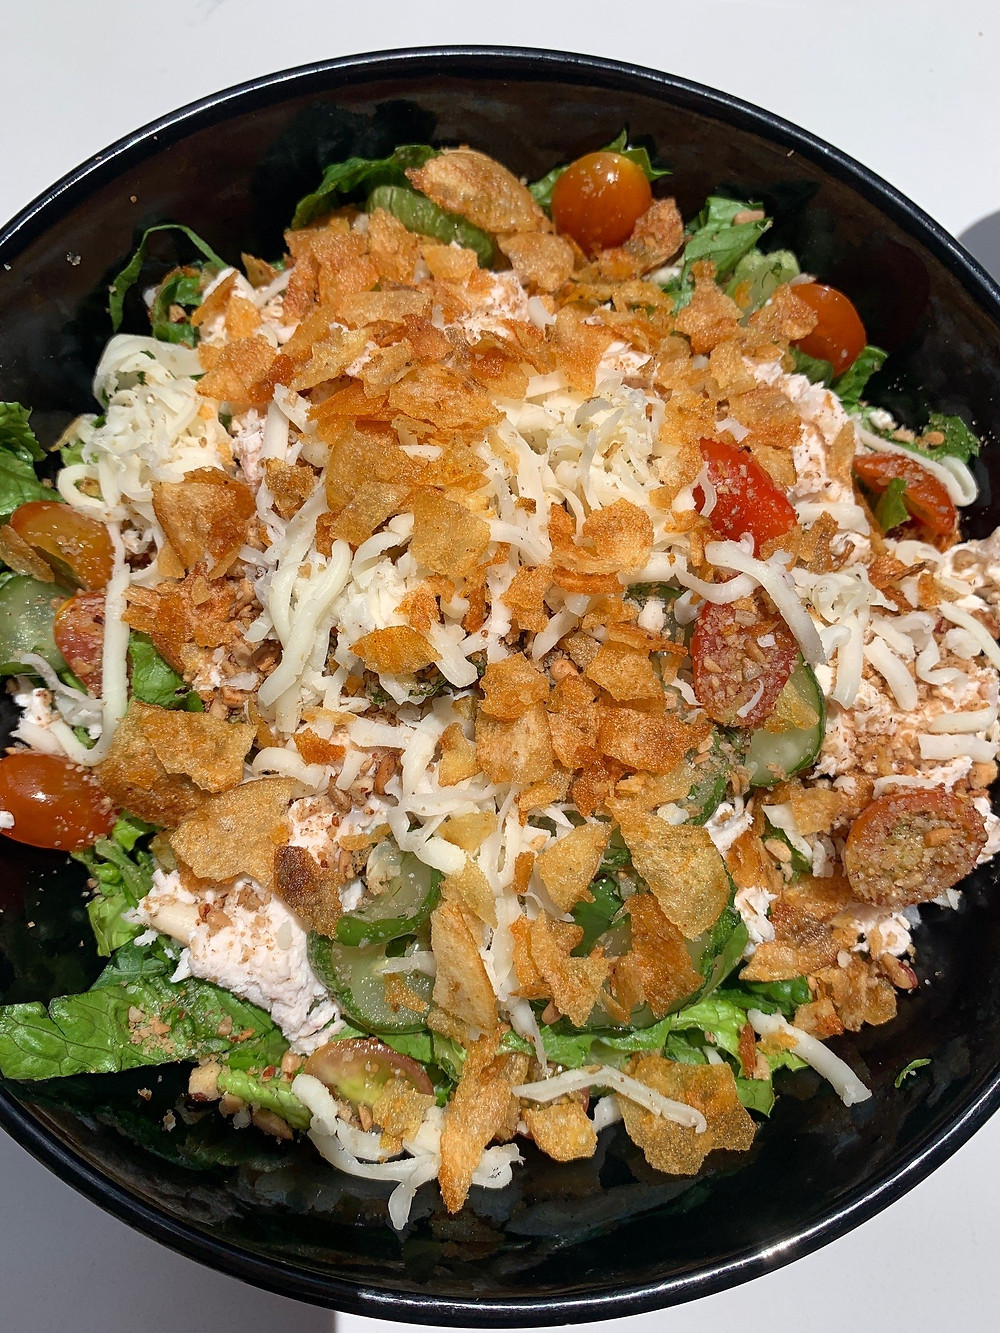 The Crunchy Chicken Salad from Local Foods